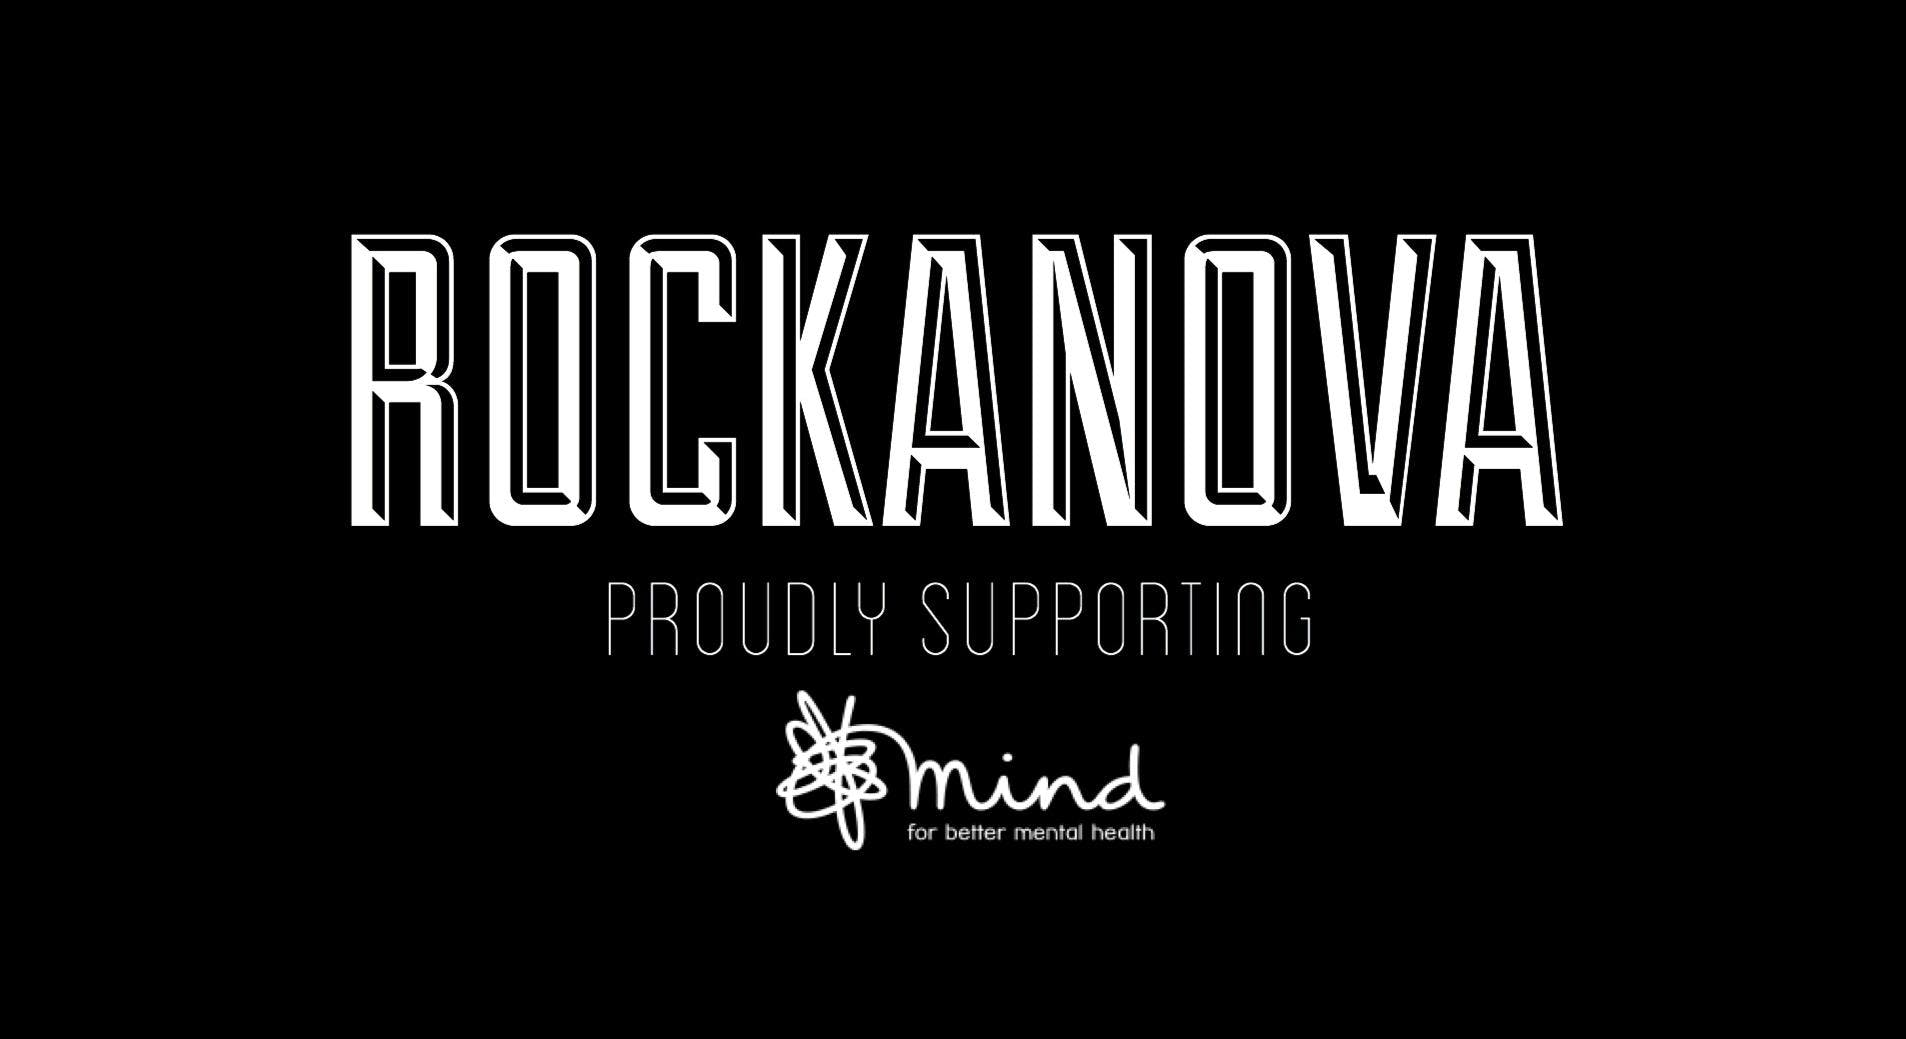 ROCKANOVA FESTIVAL - PROUDLY SUPPORTING MIND.